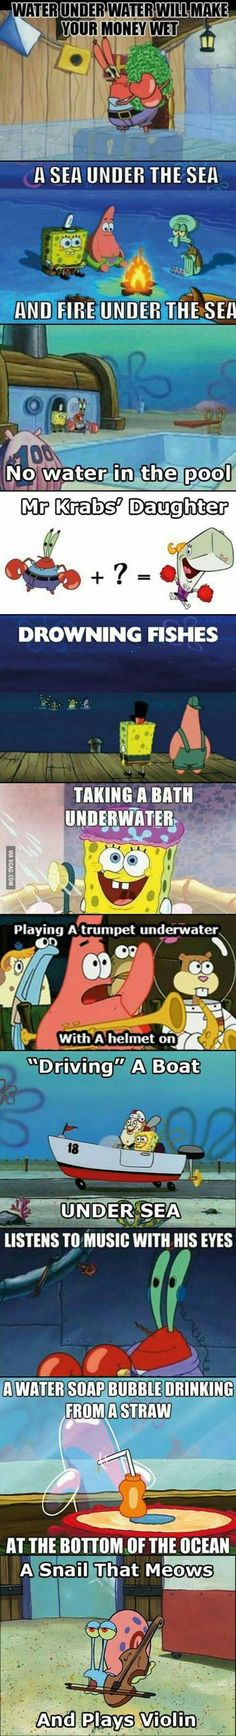 The logic of Spongebob- there is none